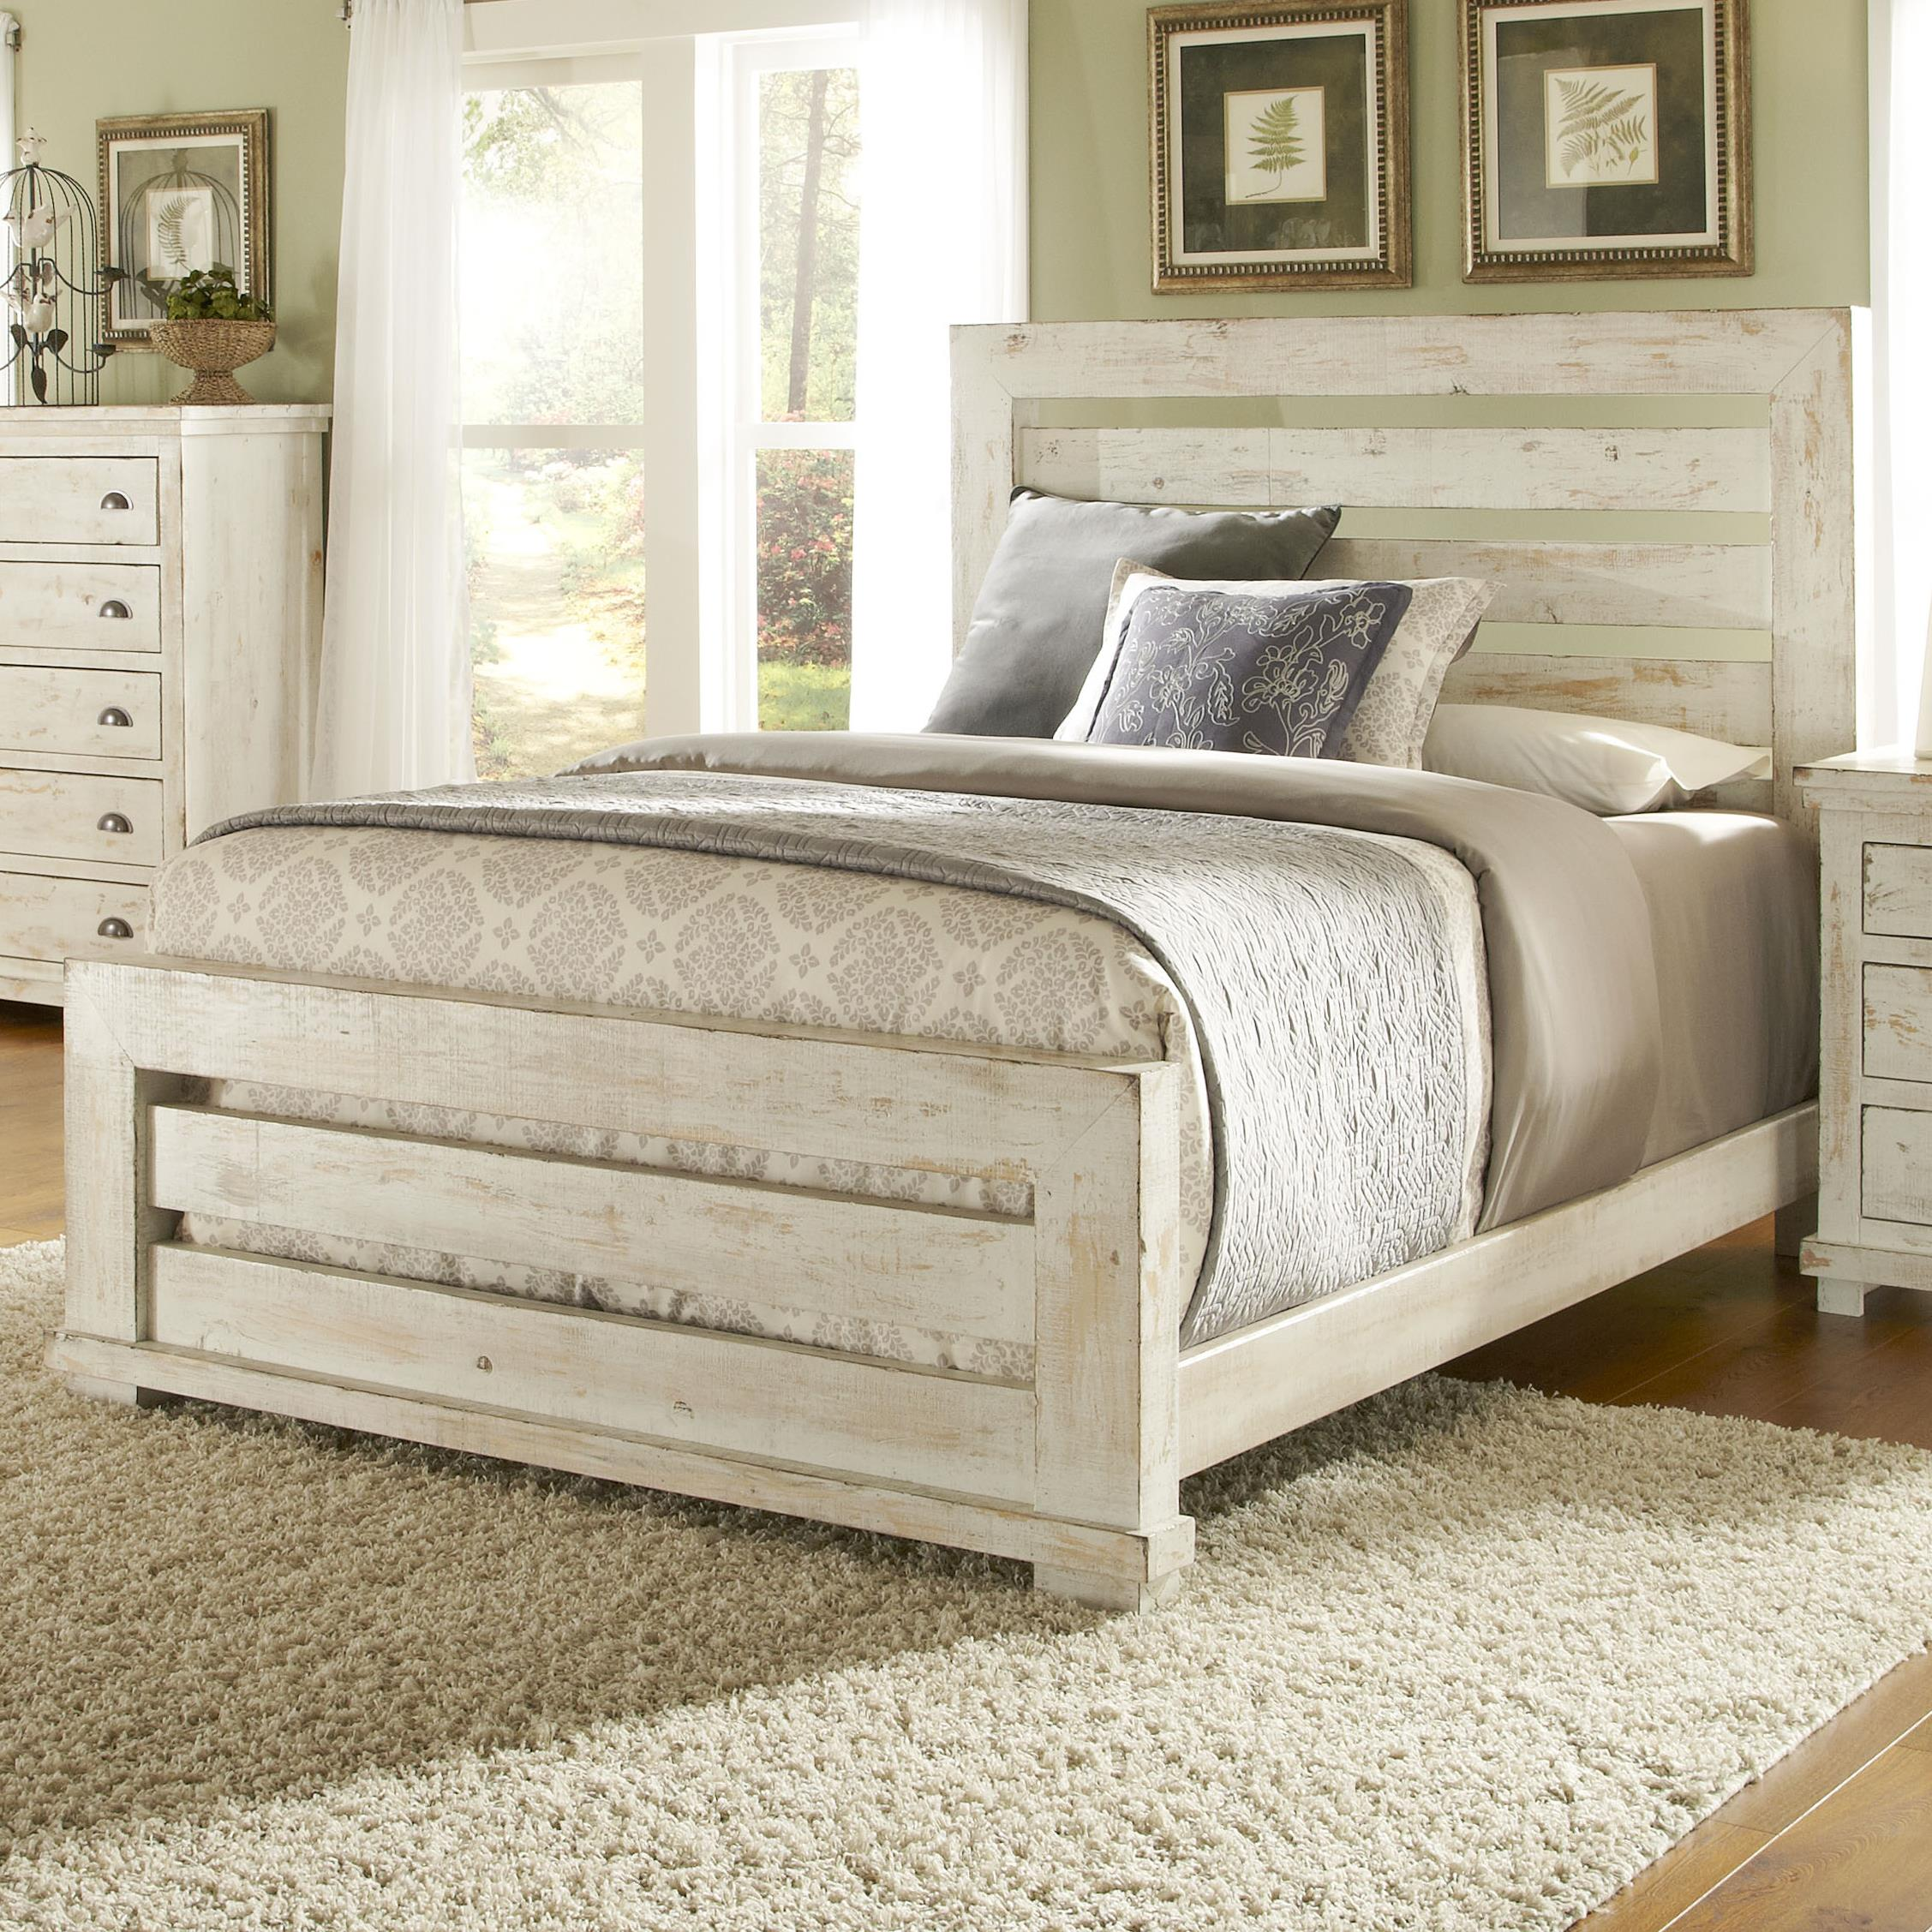 Willow King Slat Bed with Distressed Pine Frame by Progressive Furniture at  Lindy\'s Furniture Company